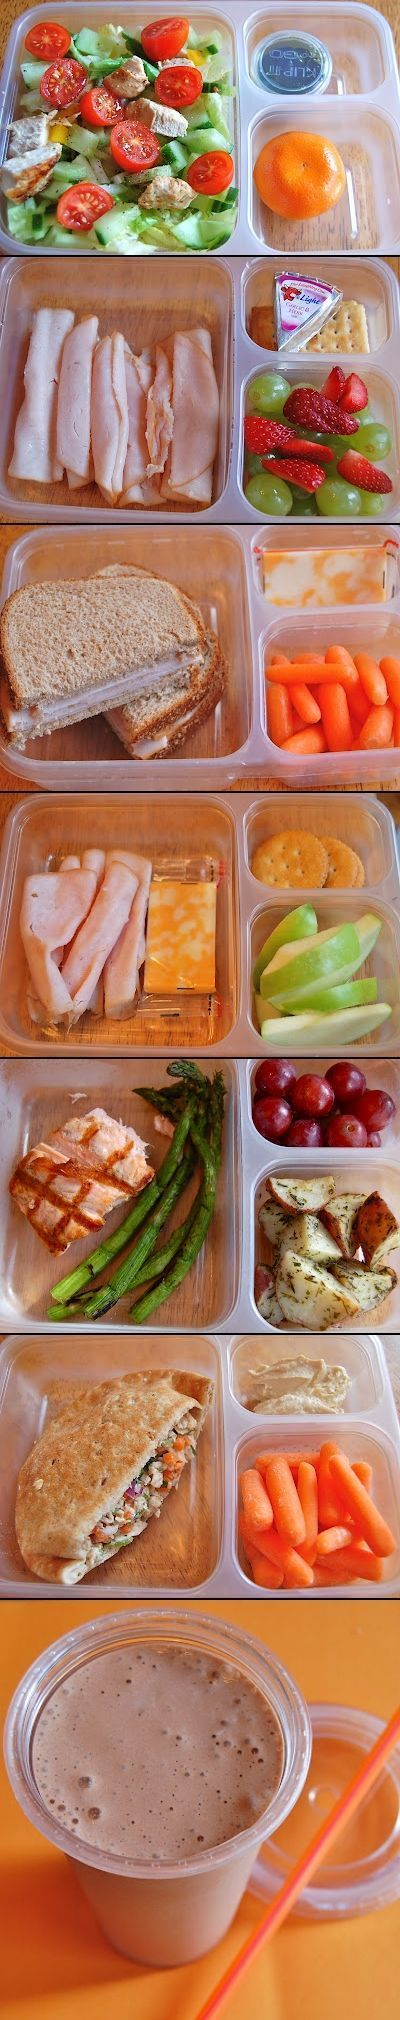 Healthy Lunch Ideas // make a bunch and stack in fridge for work school etc.